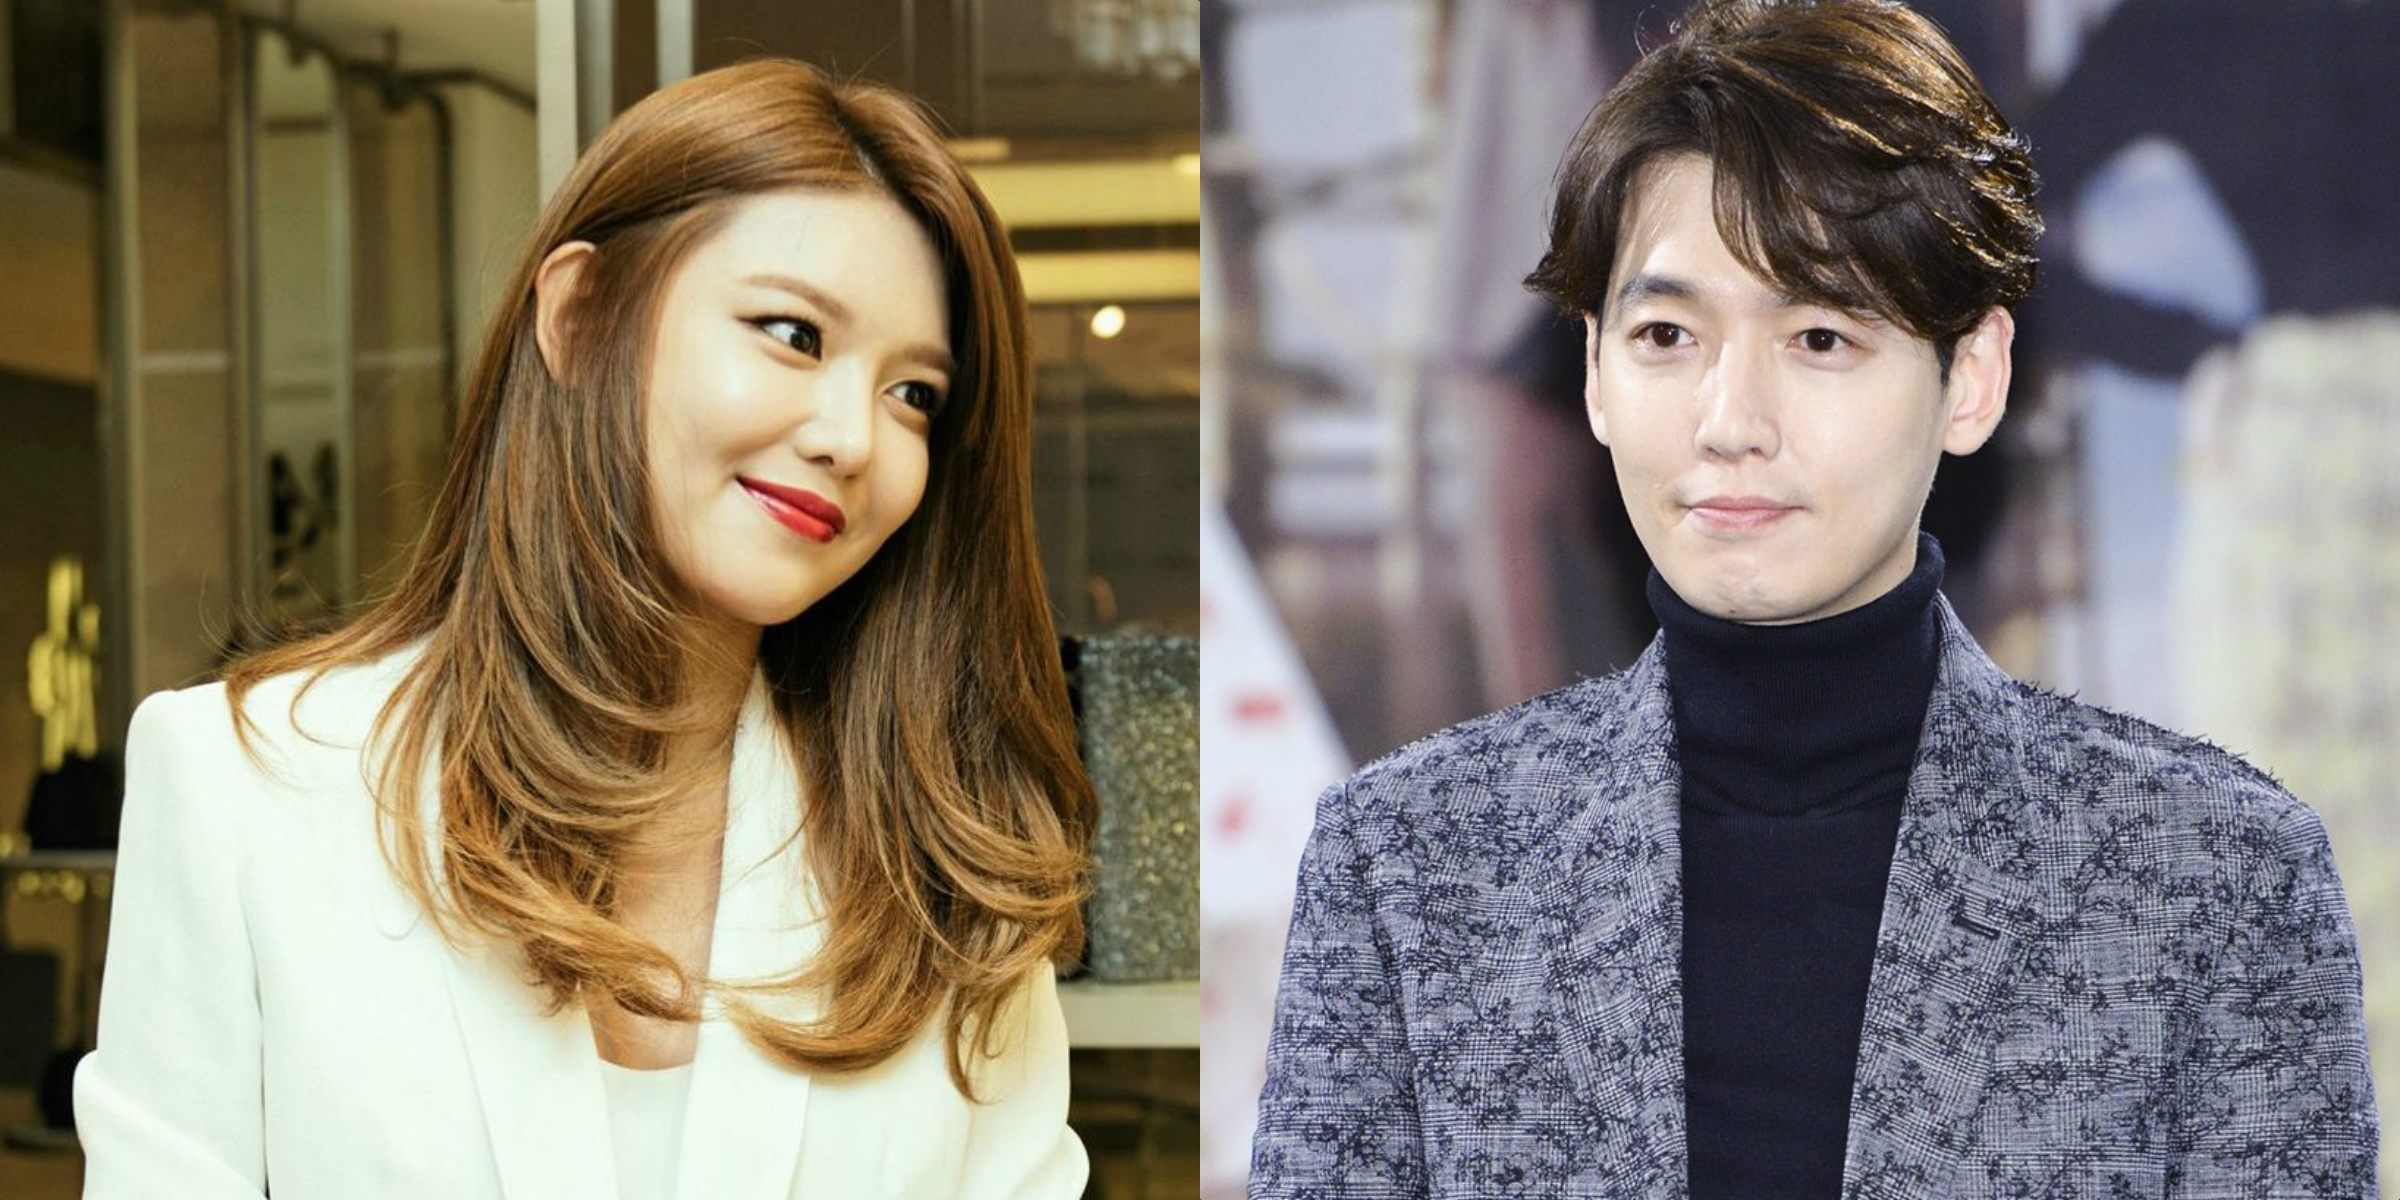 Sooyoung's boyfriend revealed a time he thought she was upset with him